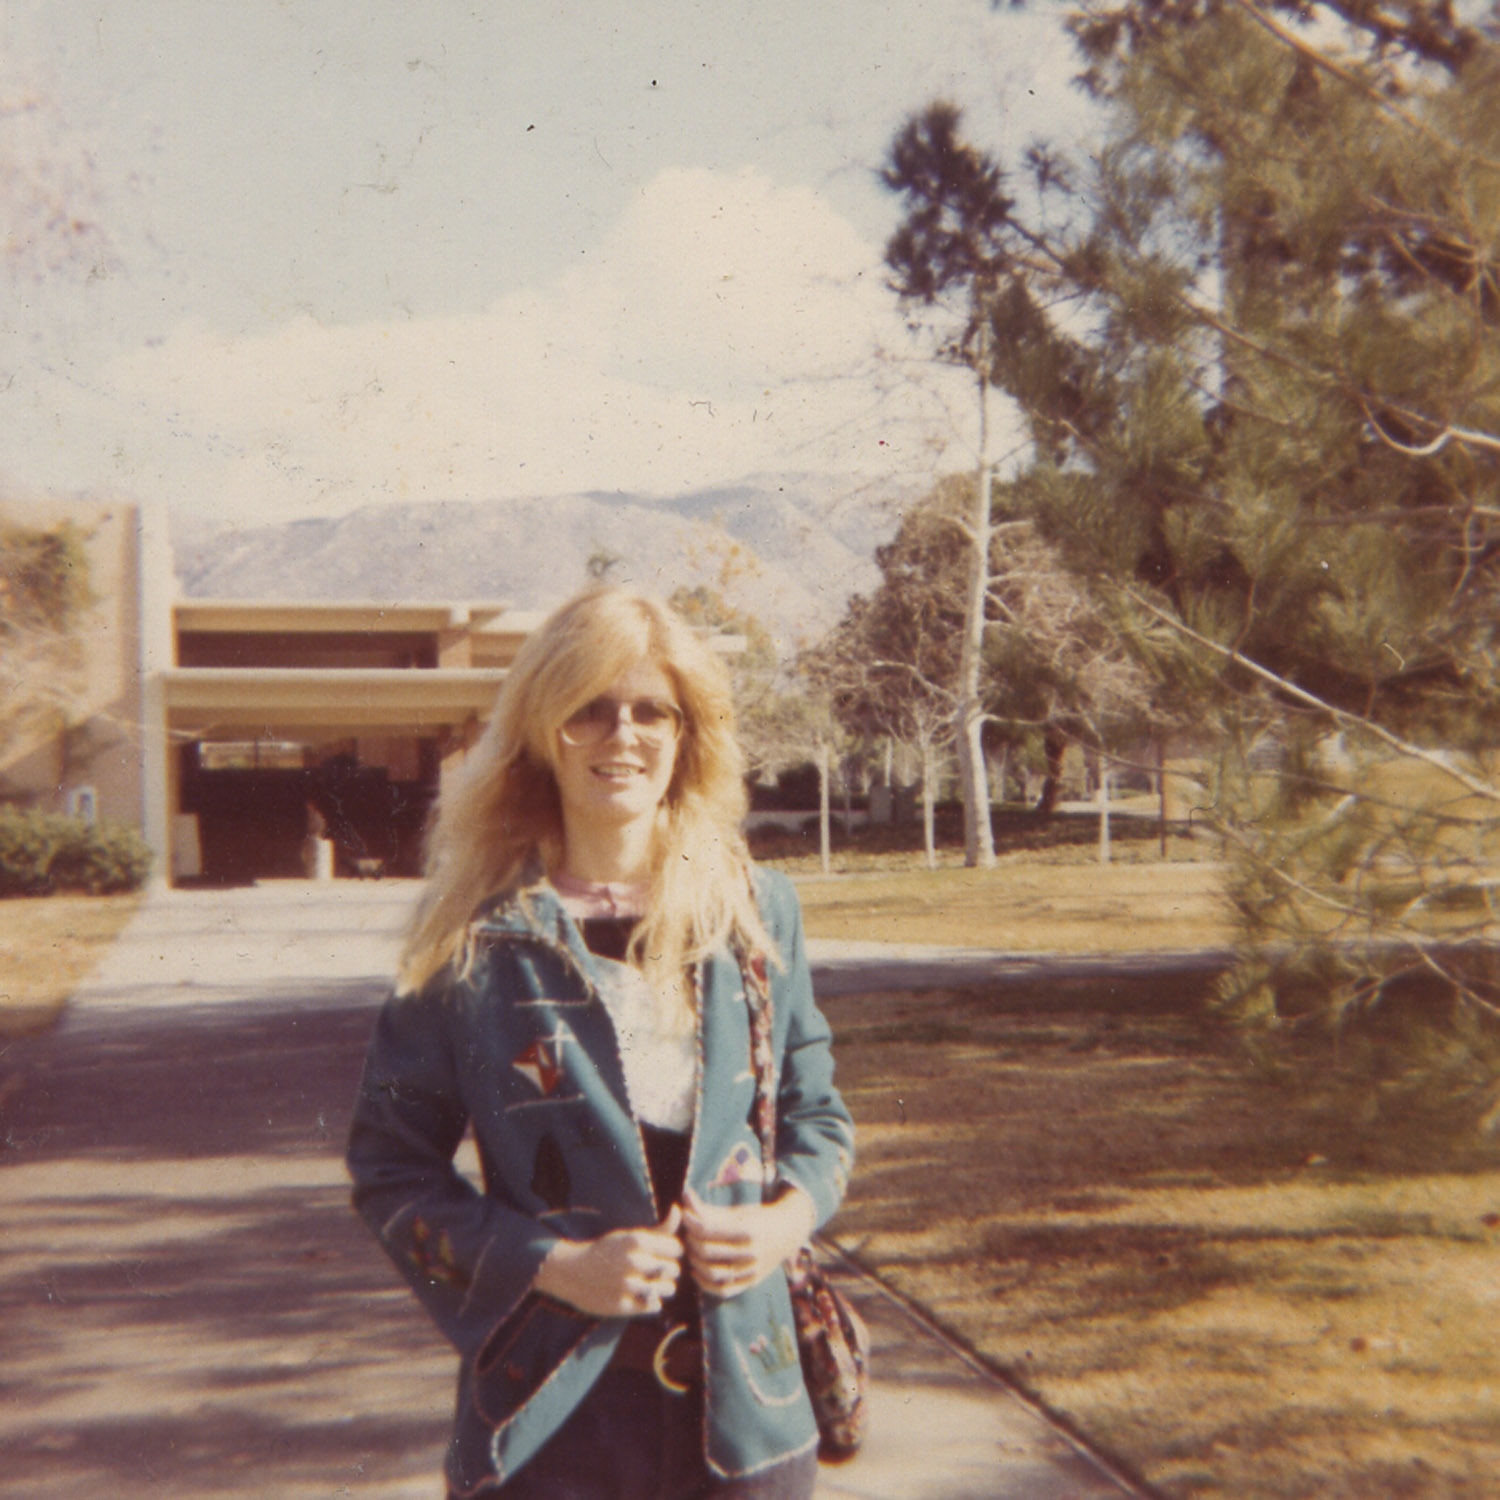 Carla at the University of California at Riverside, c. 1968